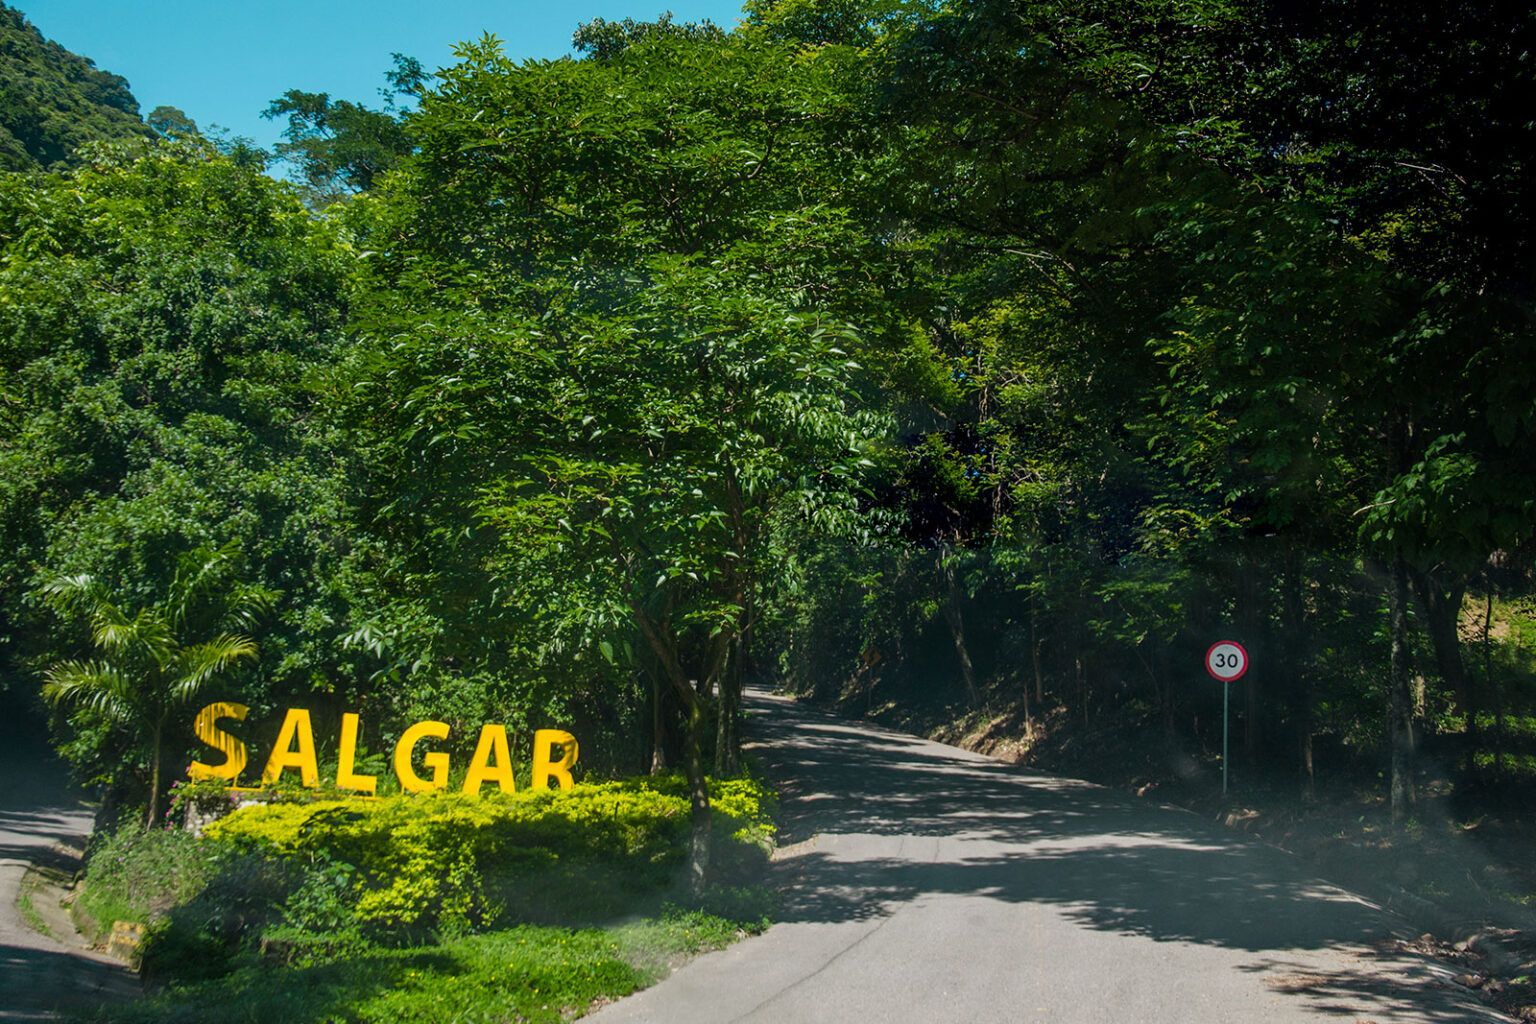 The turnoff from the highway to Salgar, where GCC's farms are located.